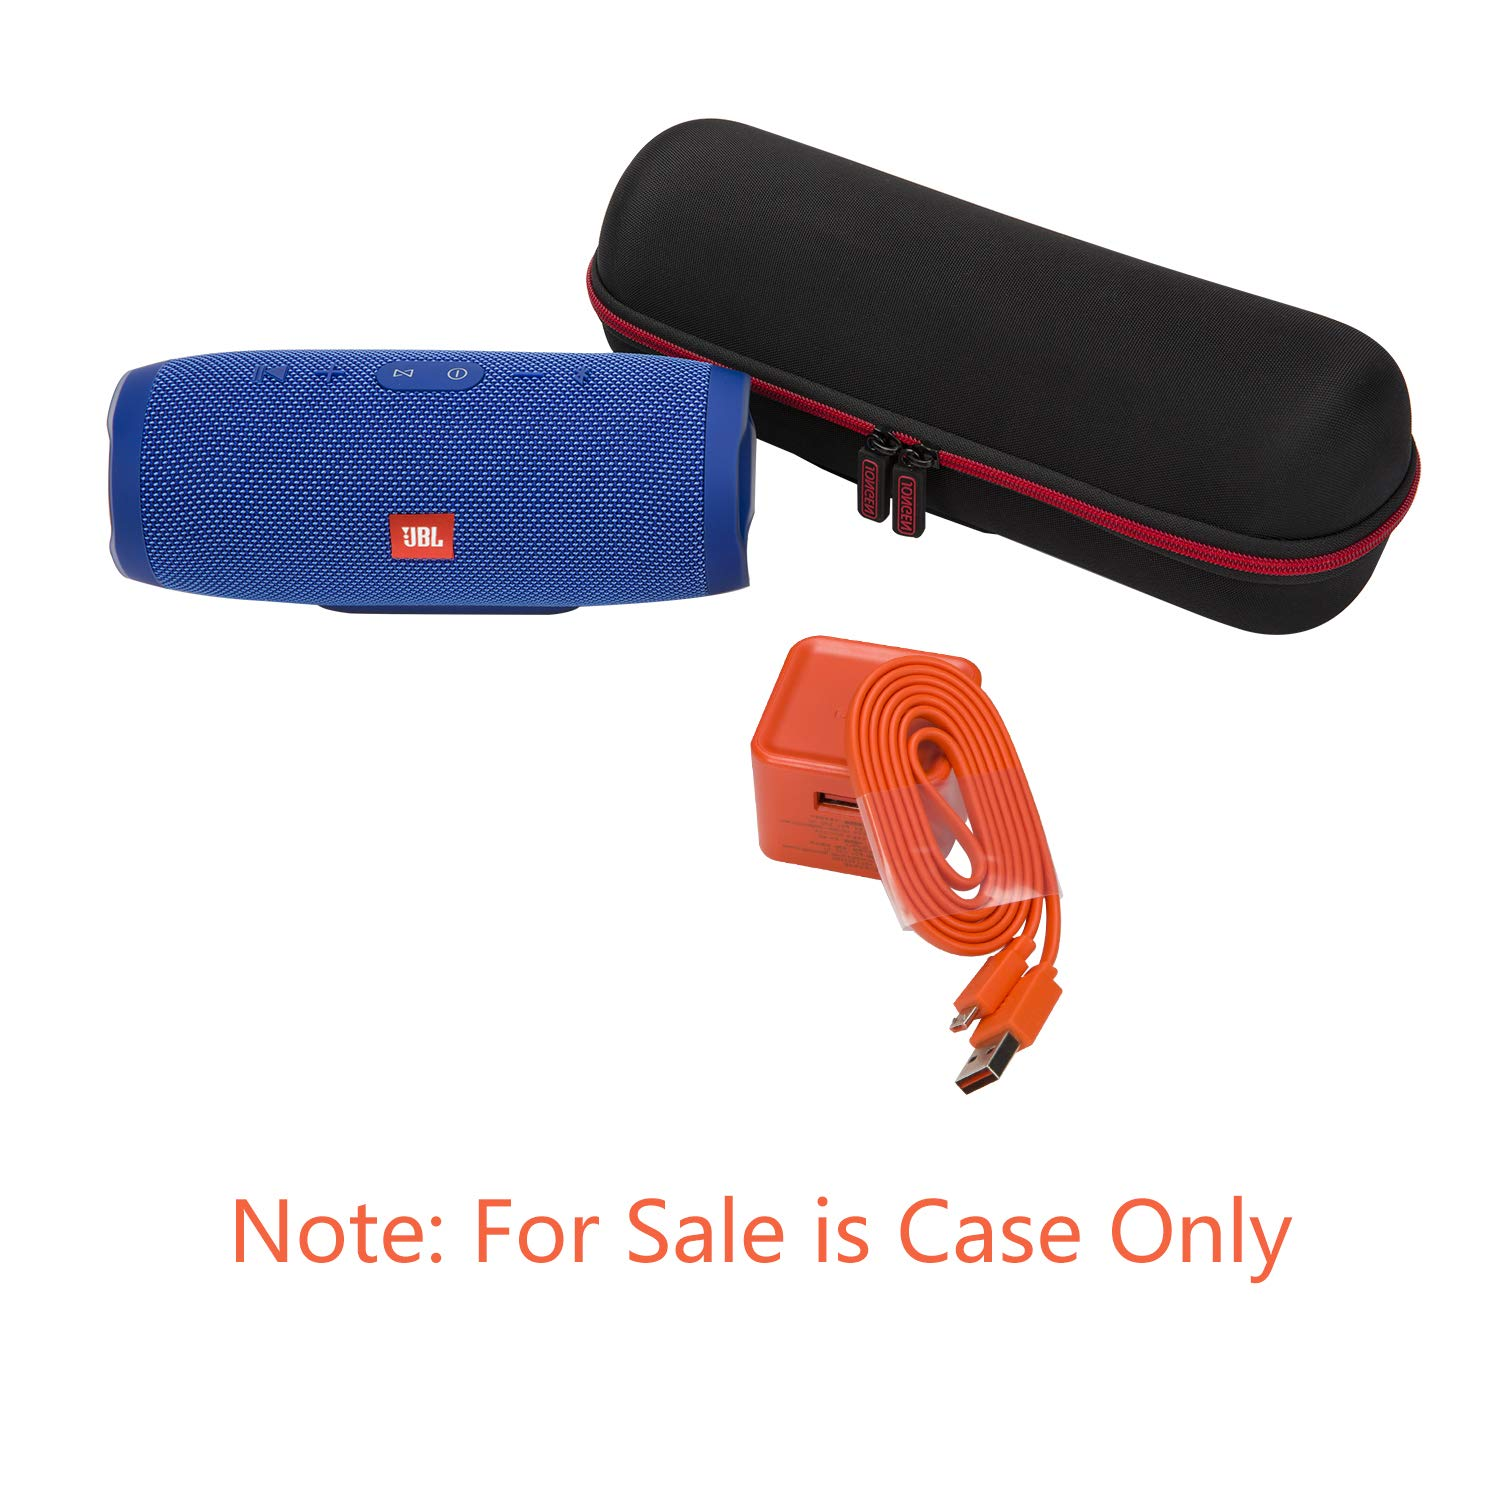 JONGEN Case for JBL Charge 3 Waterproof Portable Bluetooth Speaker, Hard Strong Travel Carrying Storage Bag.